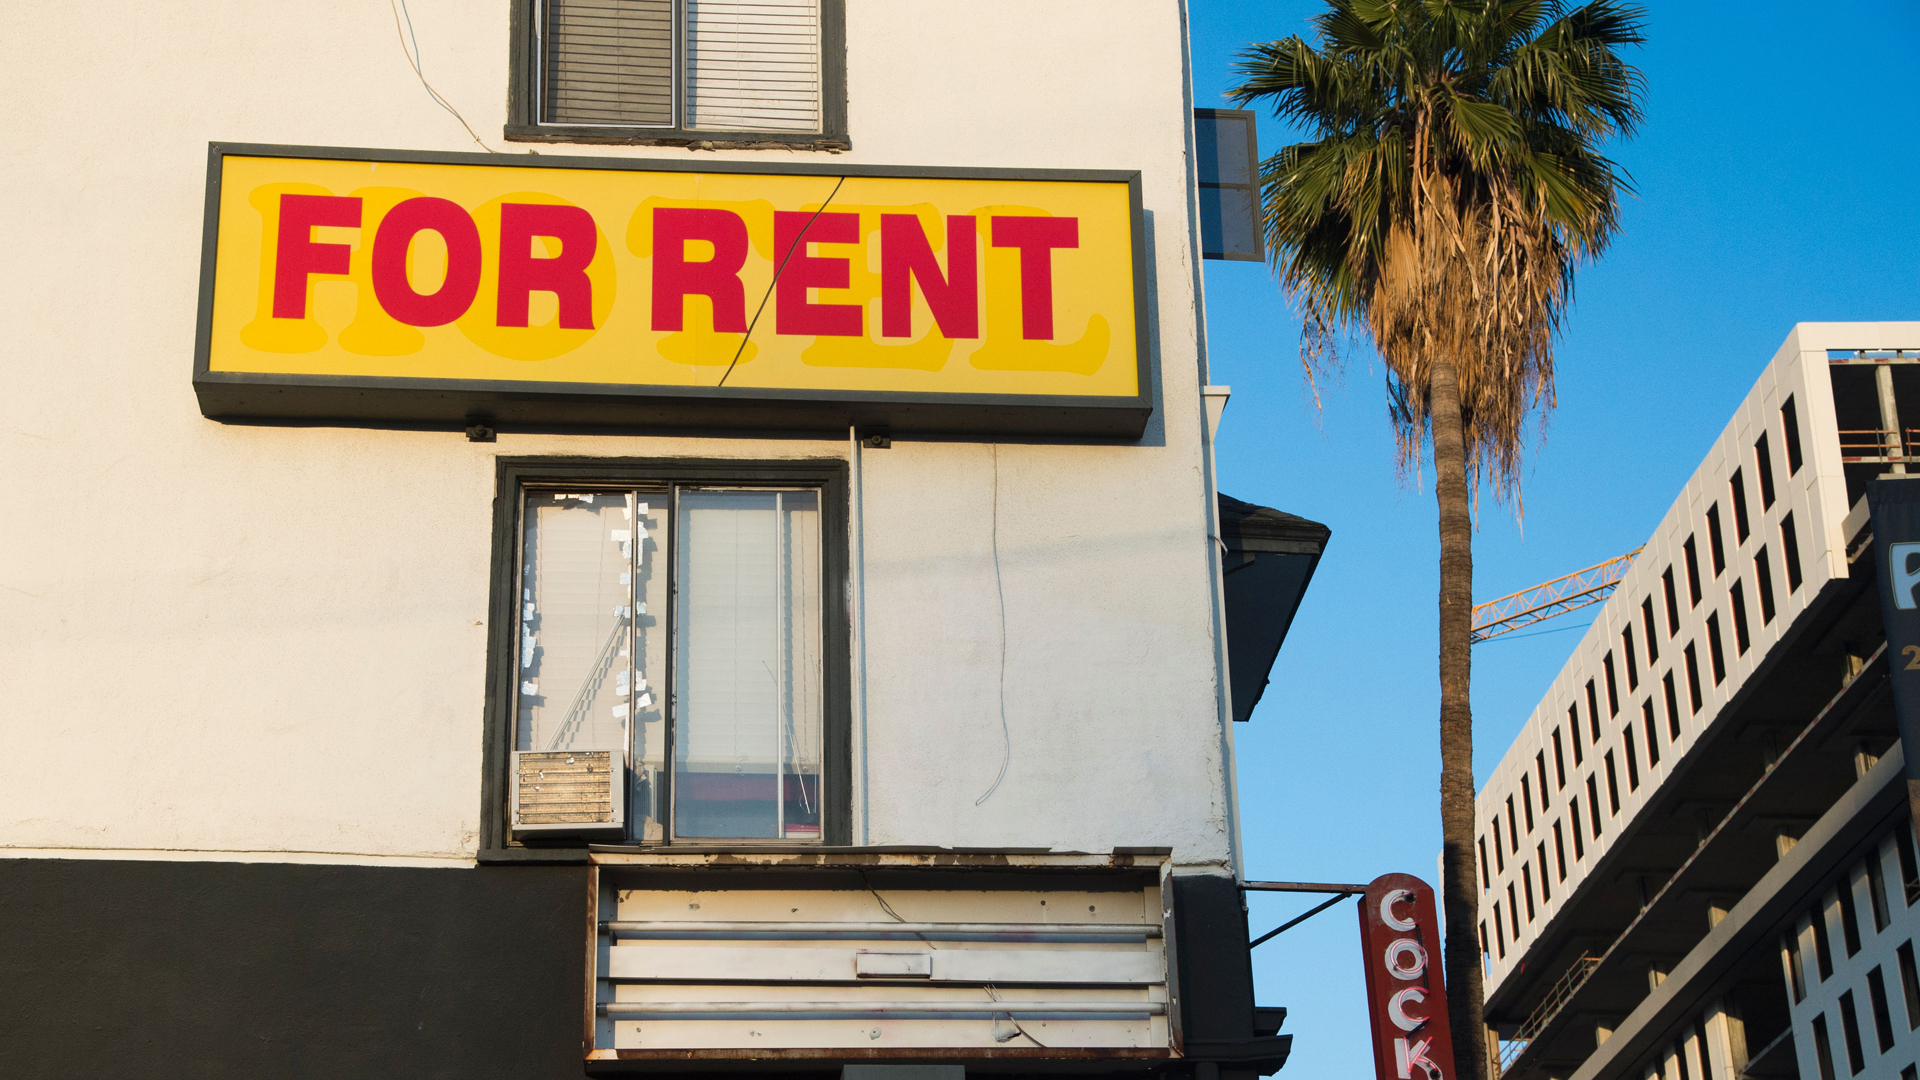 """A """"for rent"""" sign is seen on a building Hollywood on May 11, 2016. (Credit: Robyn Beck/AFP via Getty Images)"""